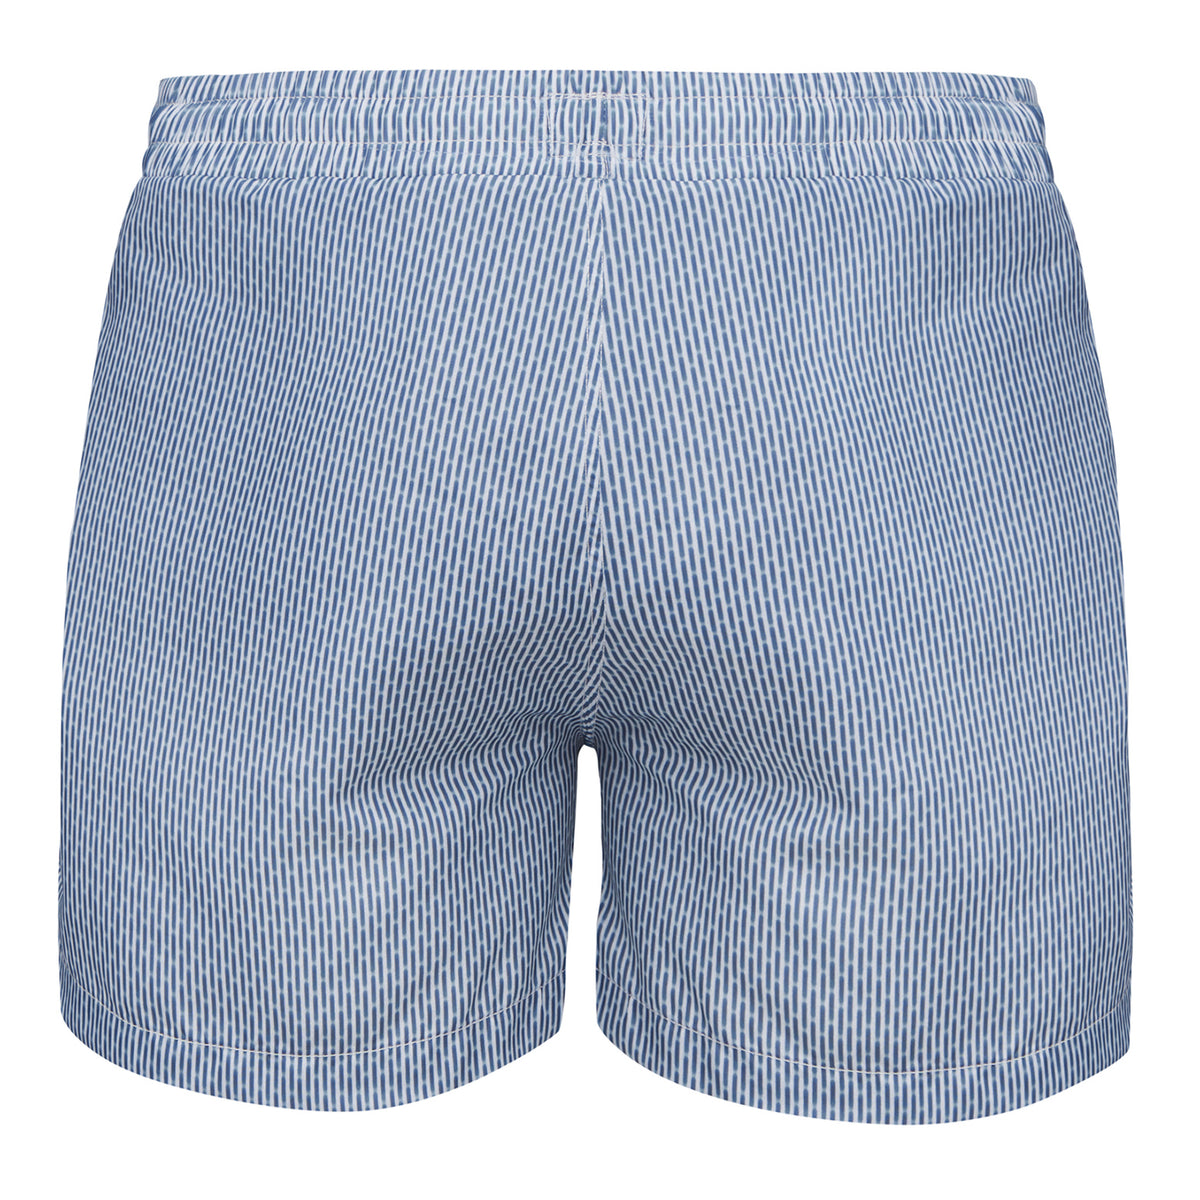 Breeze Swimshort Long - background::white,variant::Alloy Grid